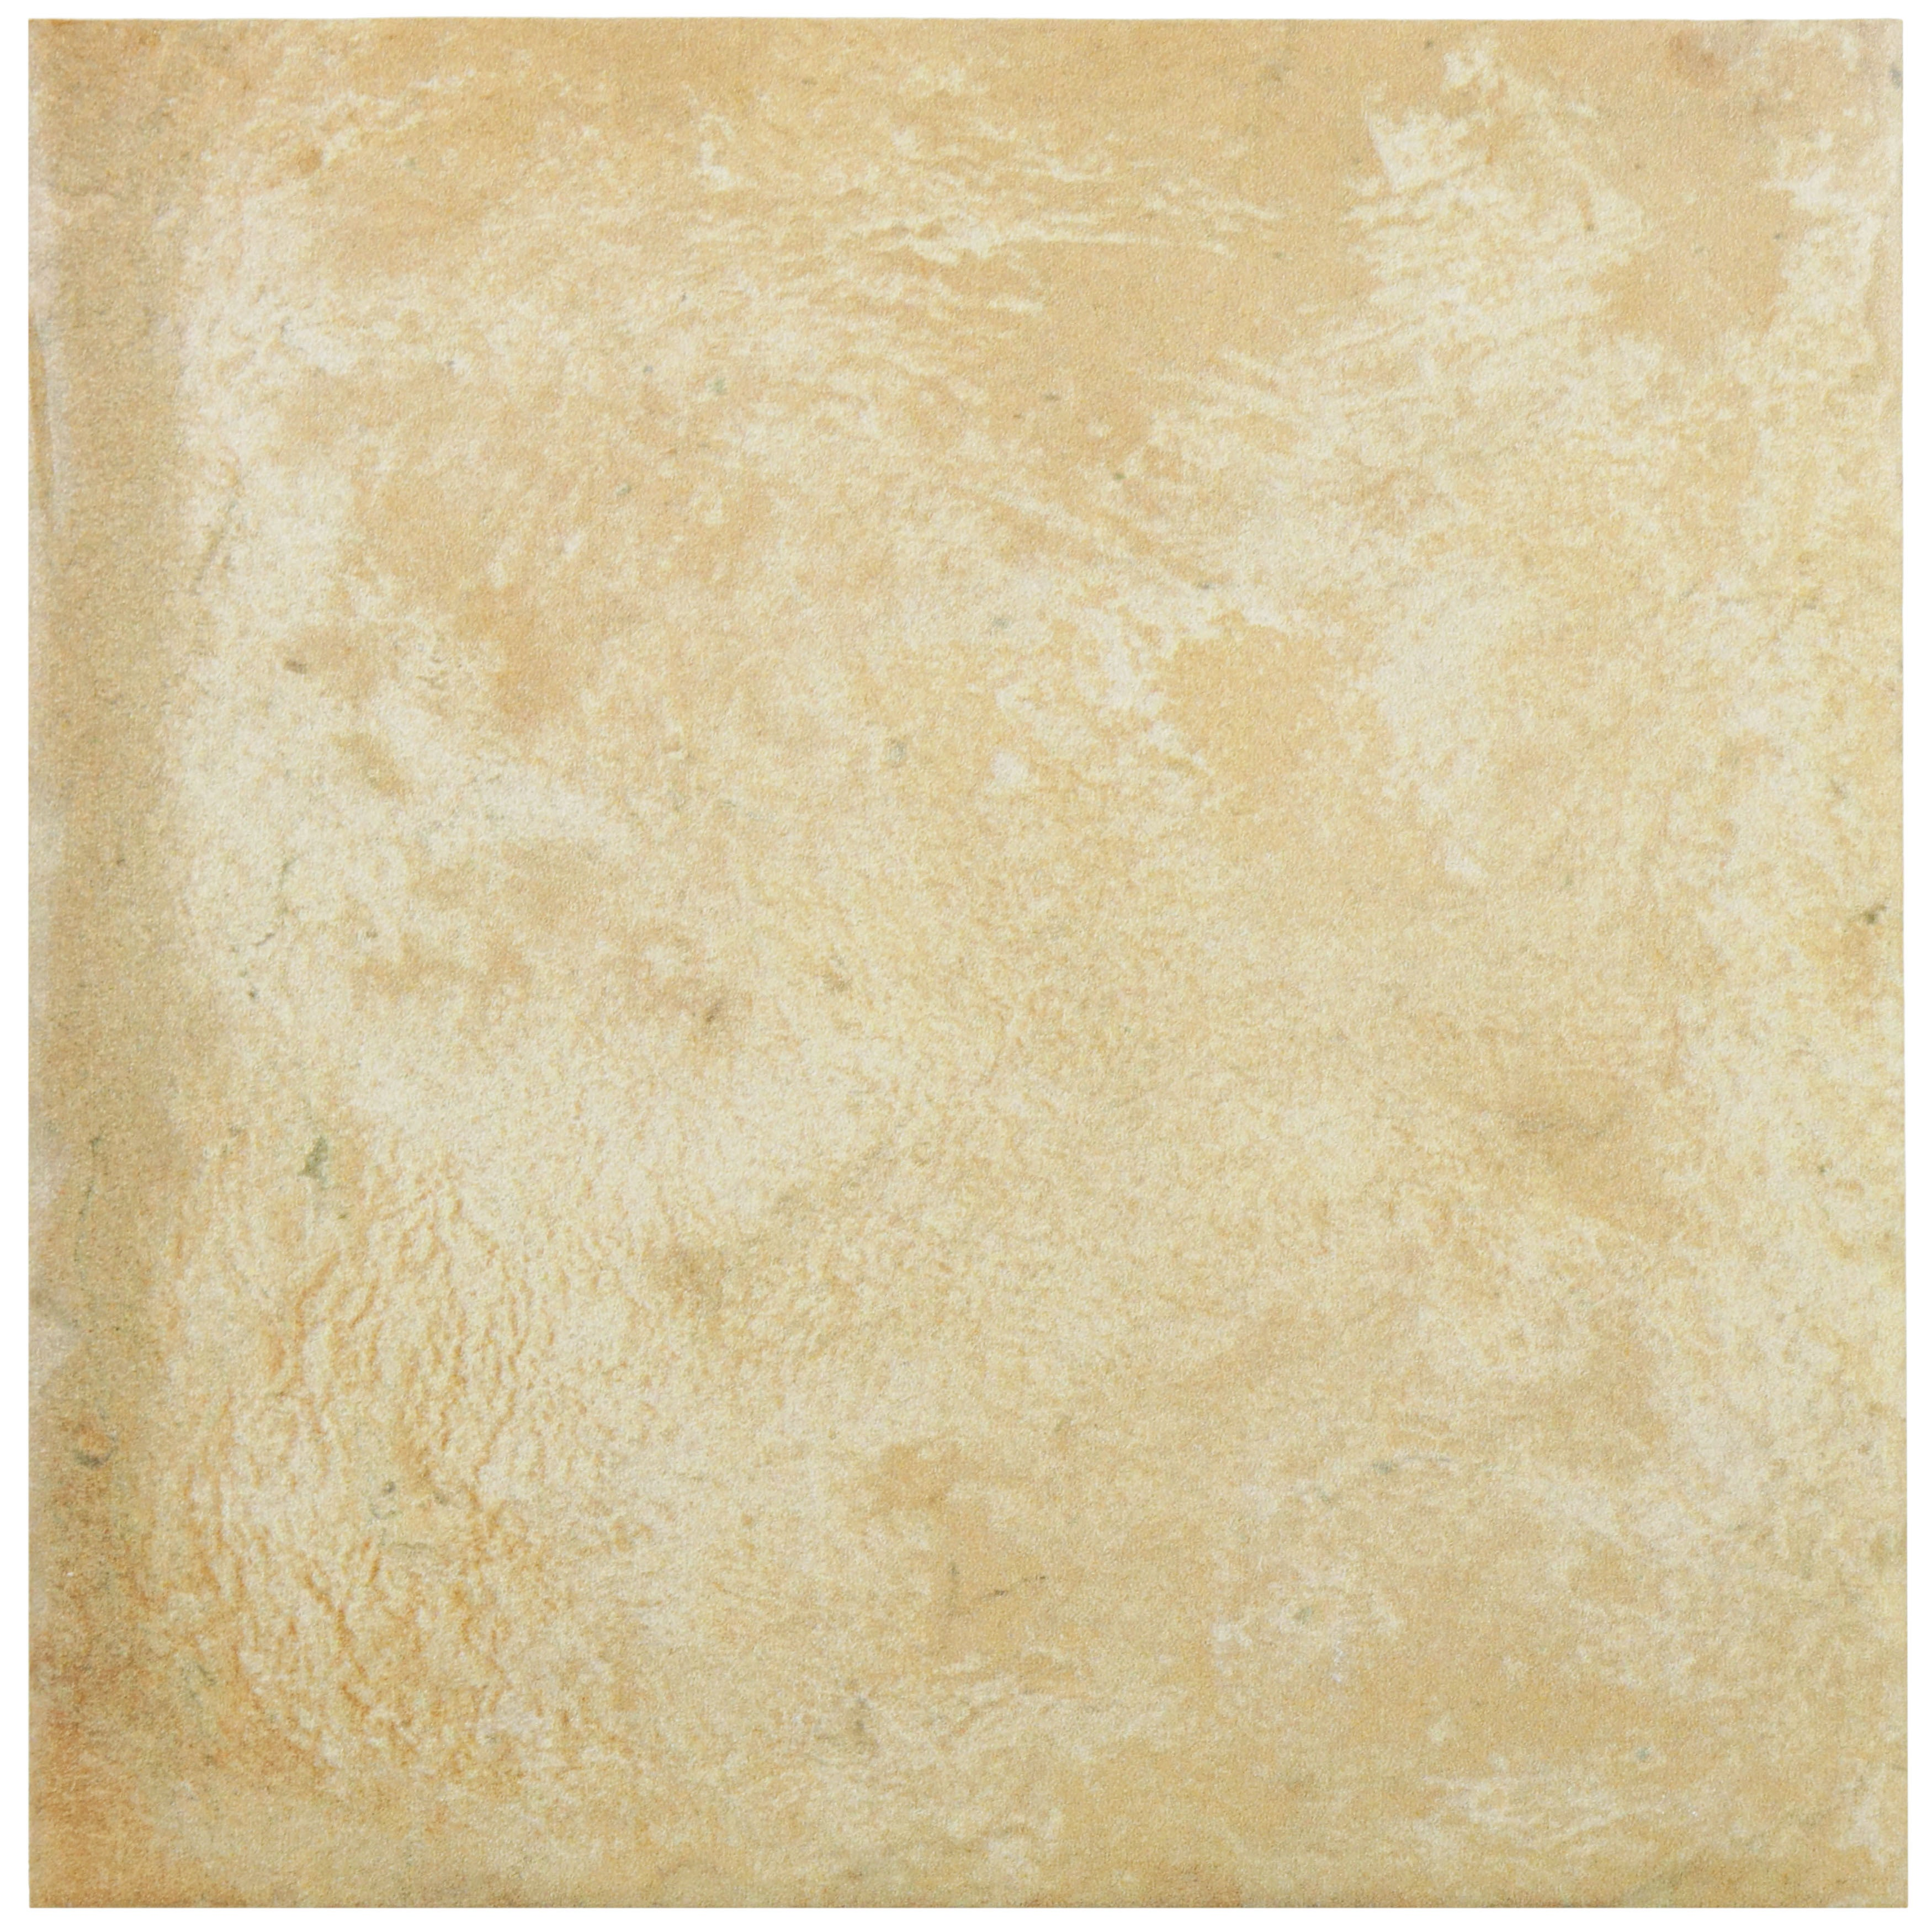 SomerTile 8.75x8.75-inch Suffolk East Porcelain Floor and Wall Tile ...